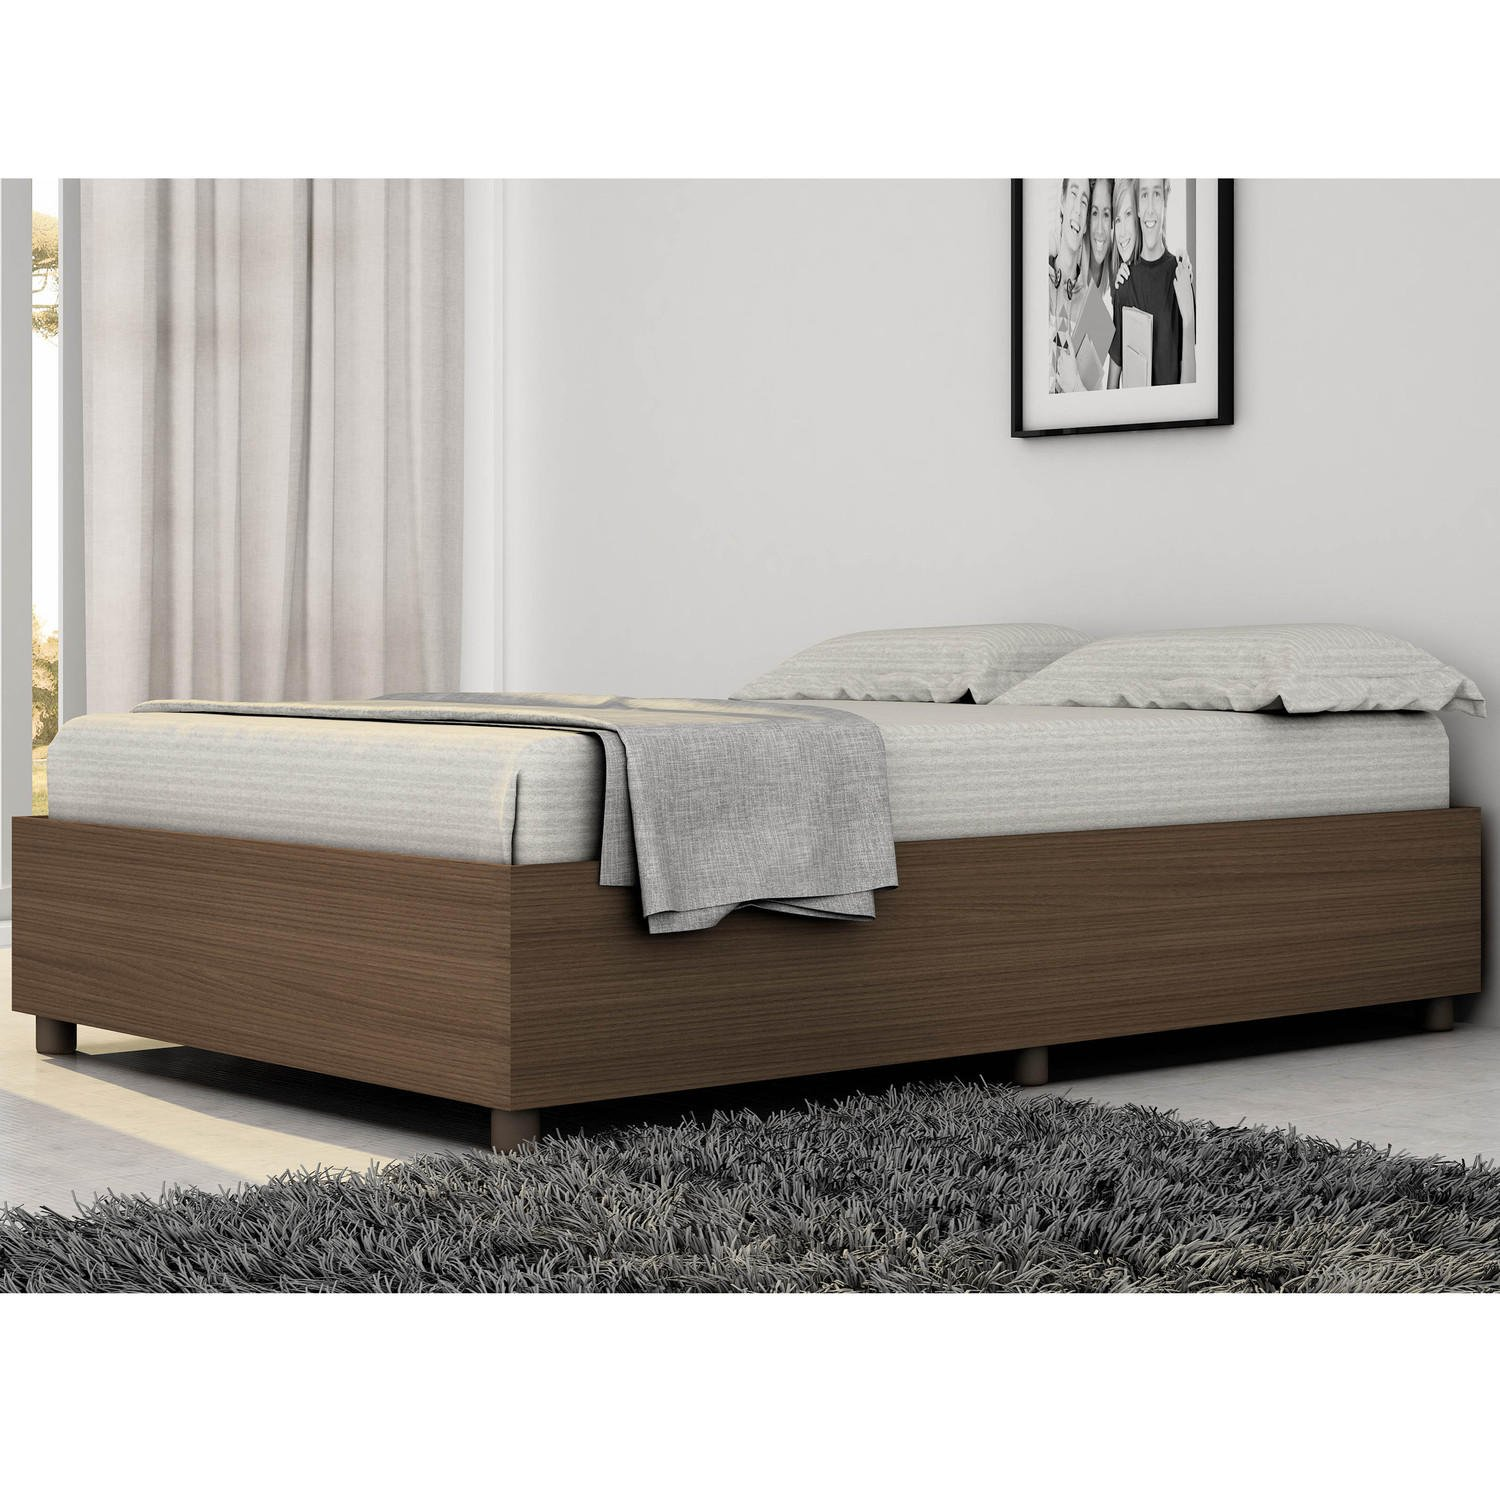 Onde comprar cama box casal barato compare pre os no for Tipos de camas queen